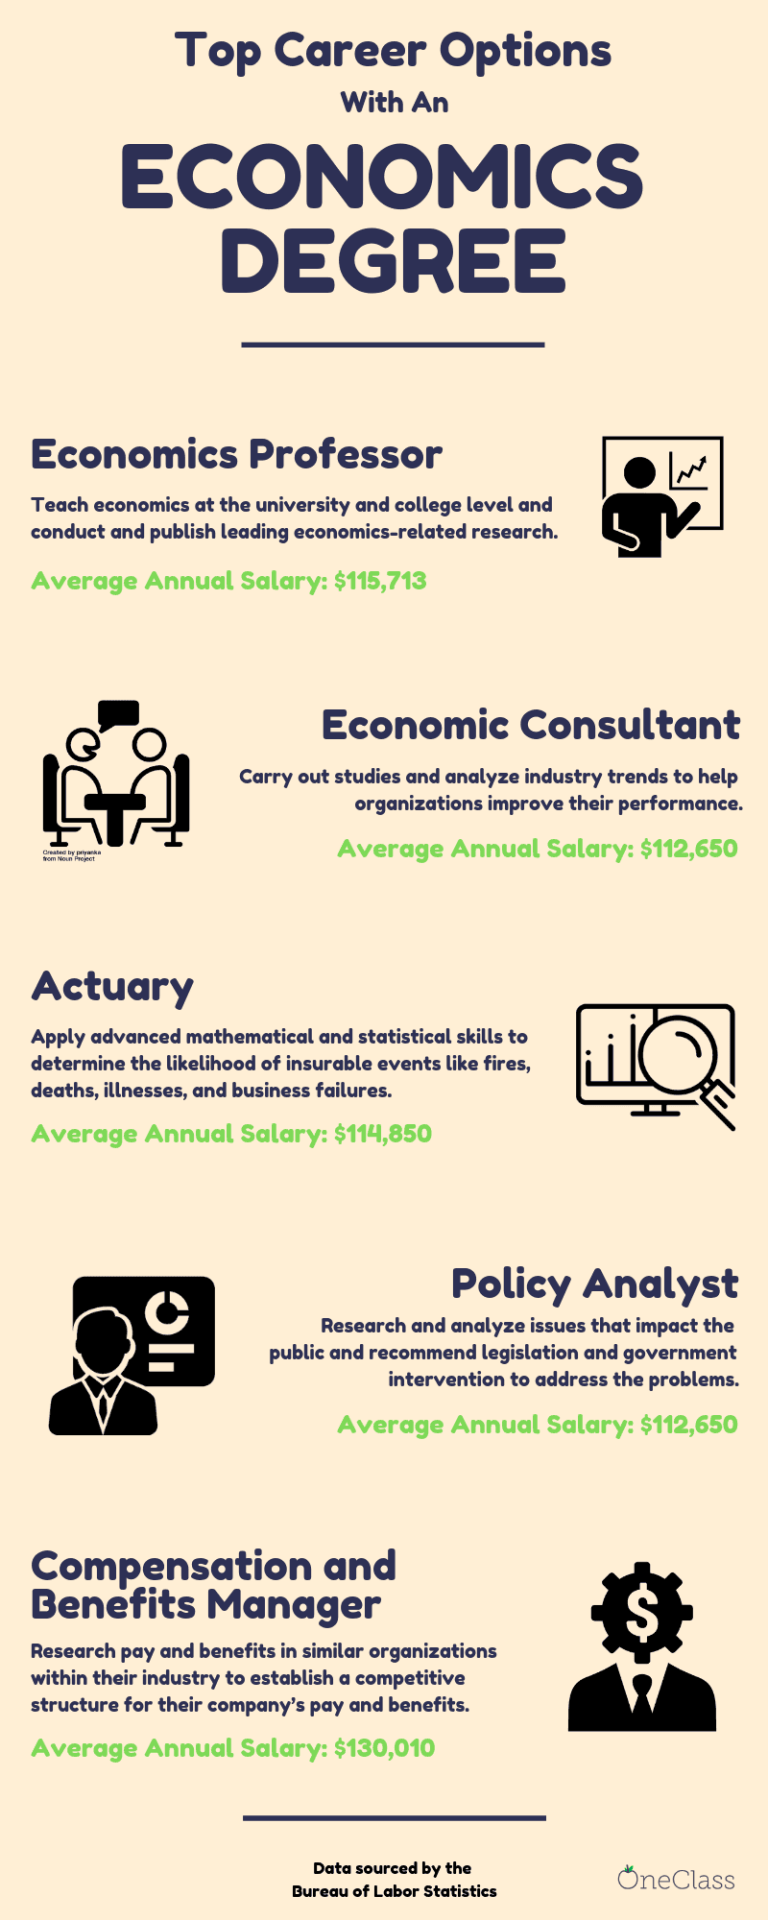 top 5 career options with an economics degree